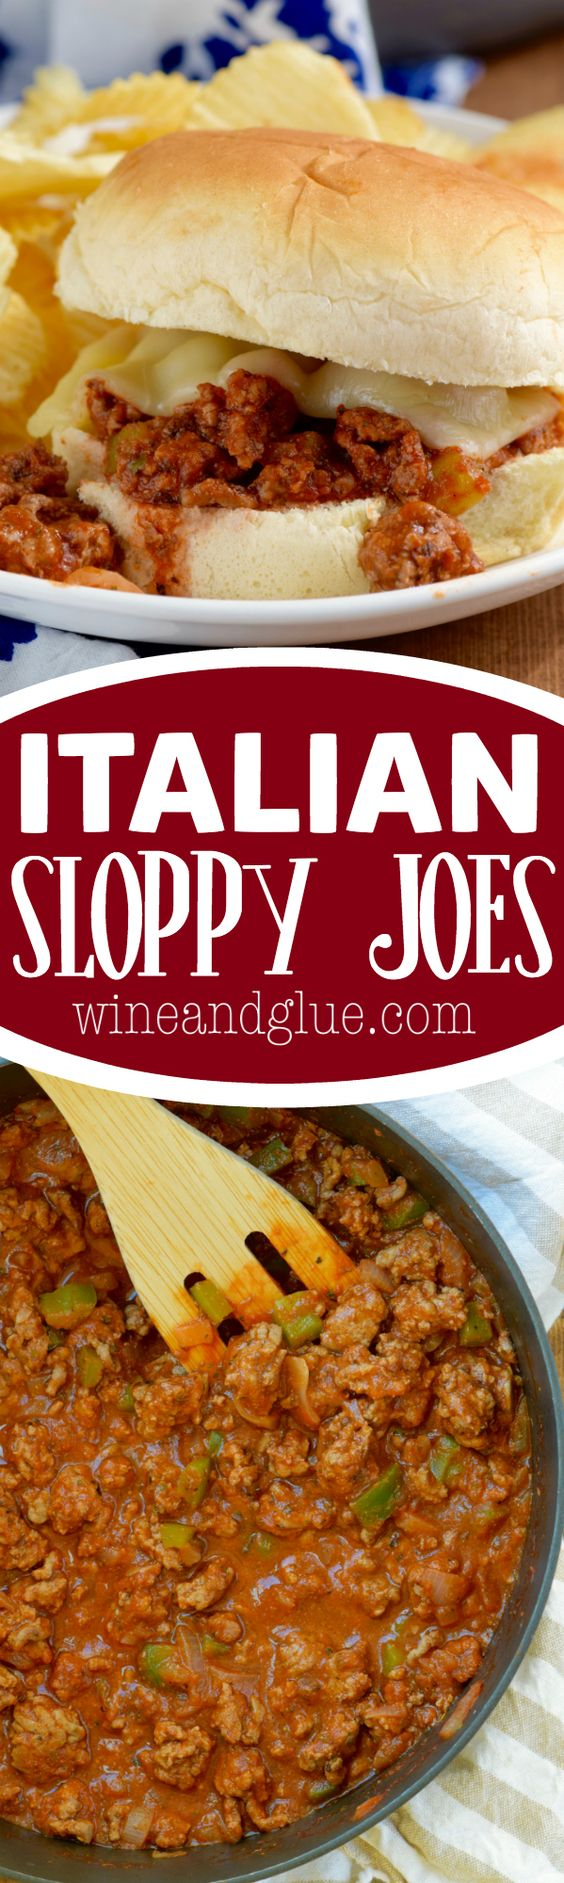 Italian Sloppy Joes | Recipe | Come Together, Italian and Twists